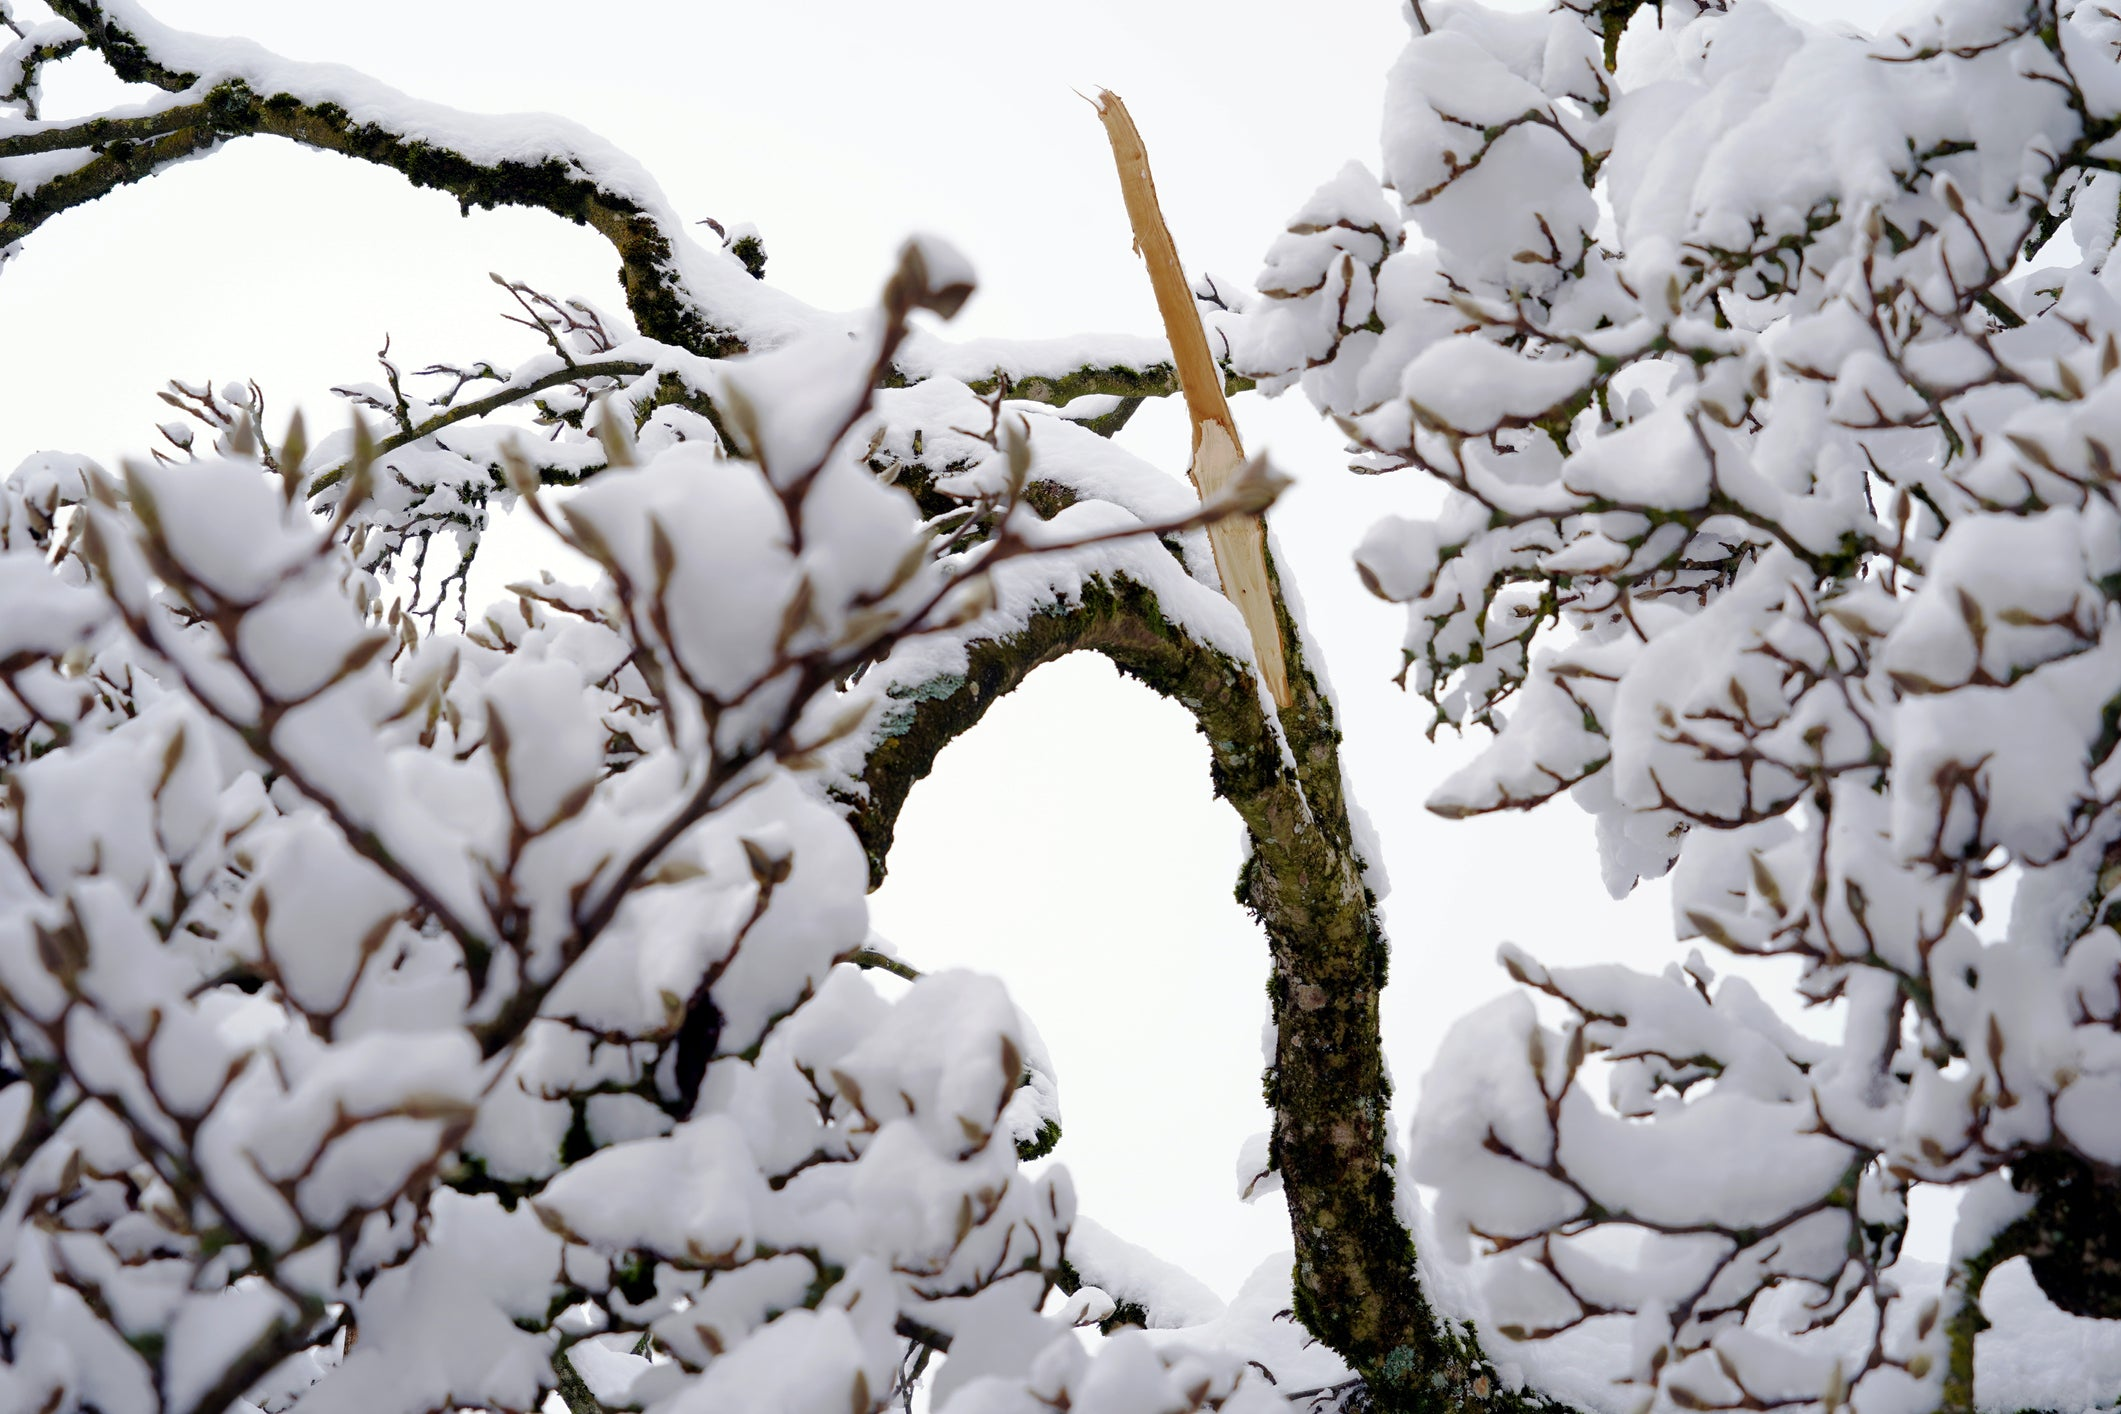 A tree with minor branch loss from a winter storm.